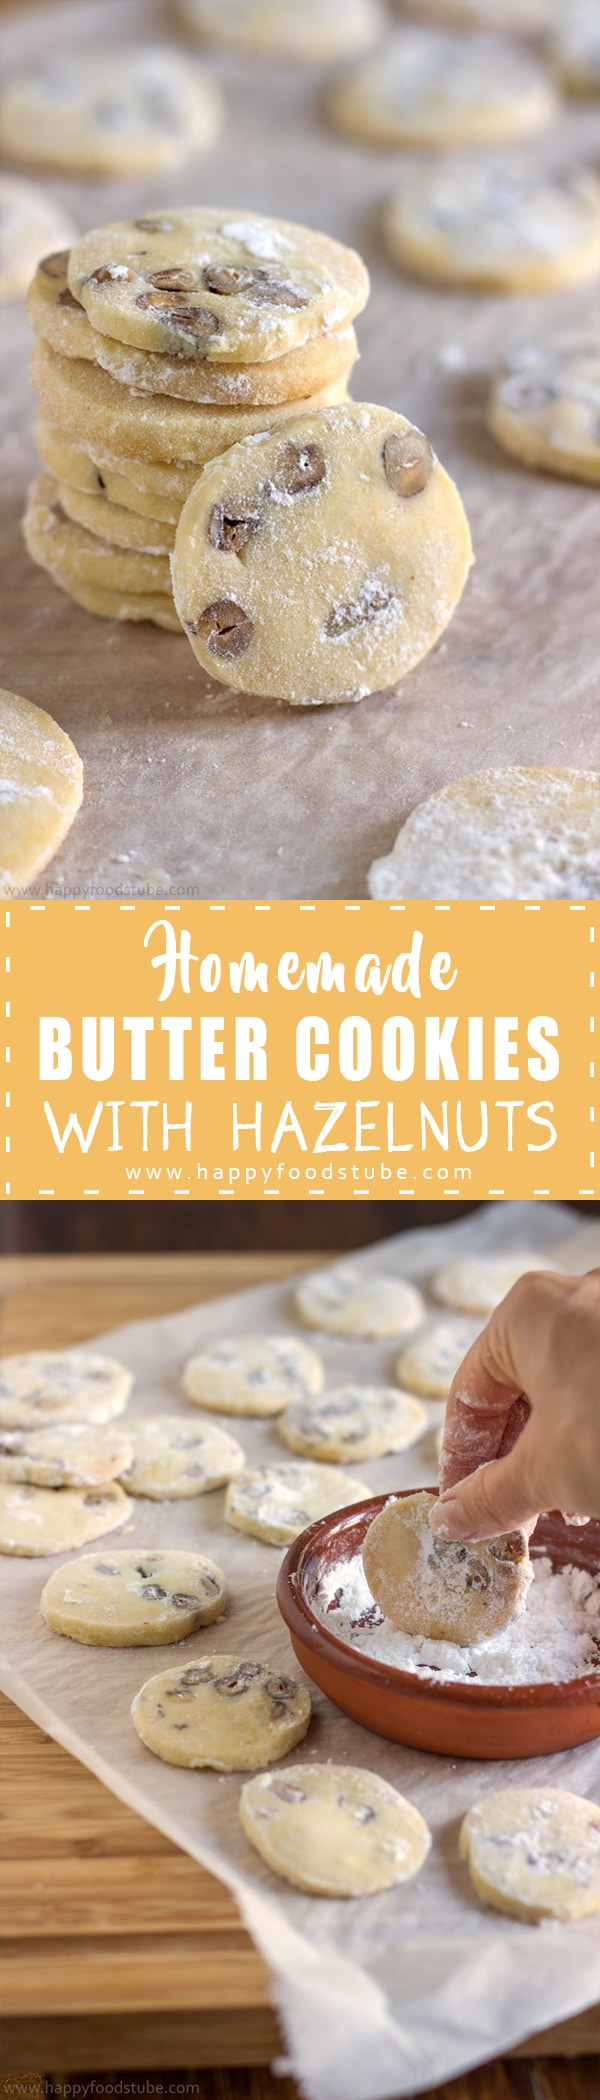 These butter cookies are hard to resist once you've tasted one! Rich, buttery cookies with pieces of hazelnuts & coated in sugar are also a great gift idea! | happyfoodstube.com